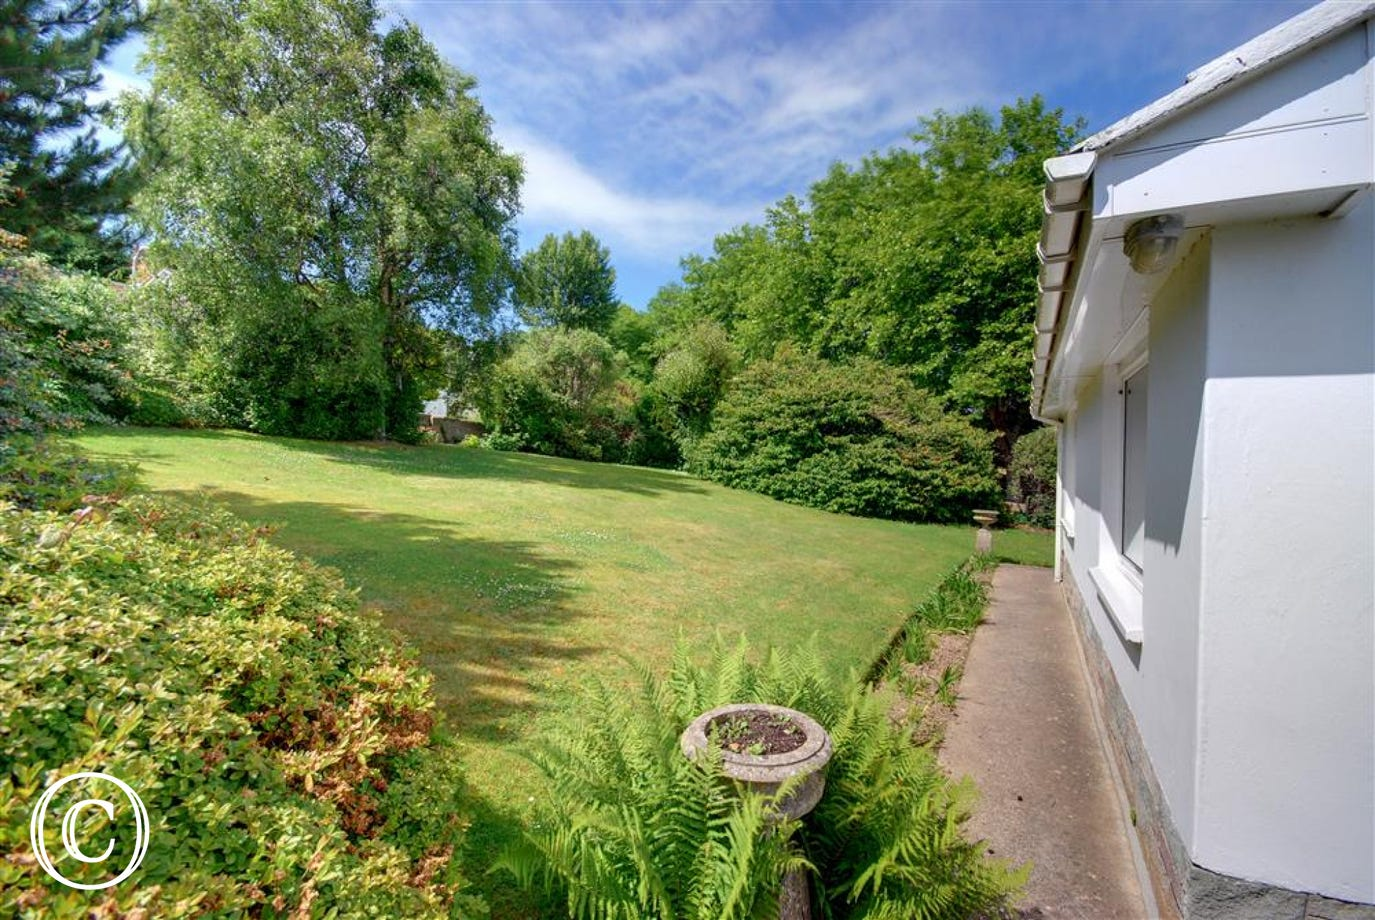 The property is surrounded by mature gardens and slightly sloping lawn